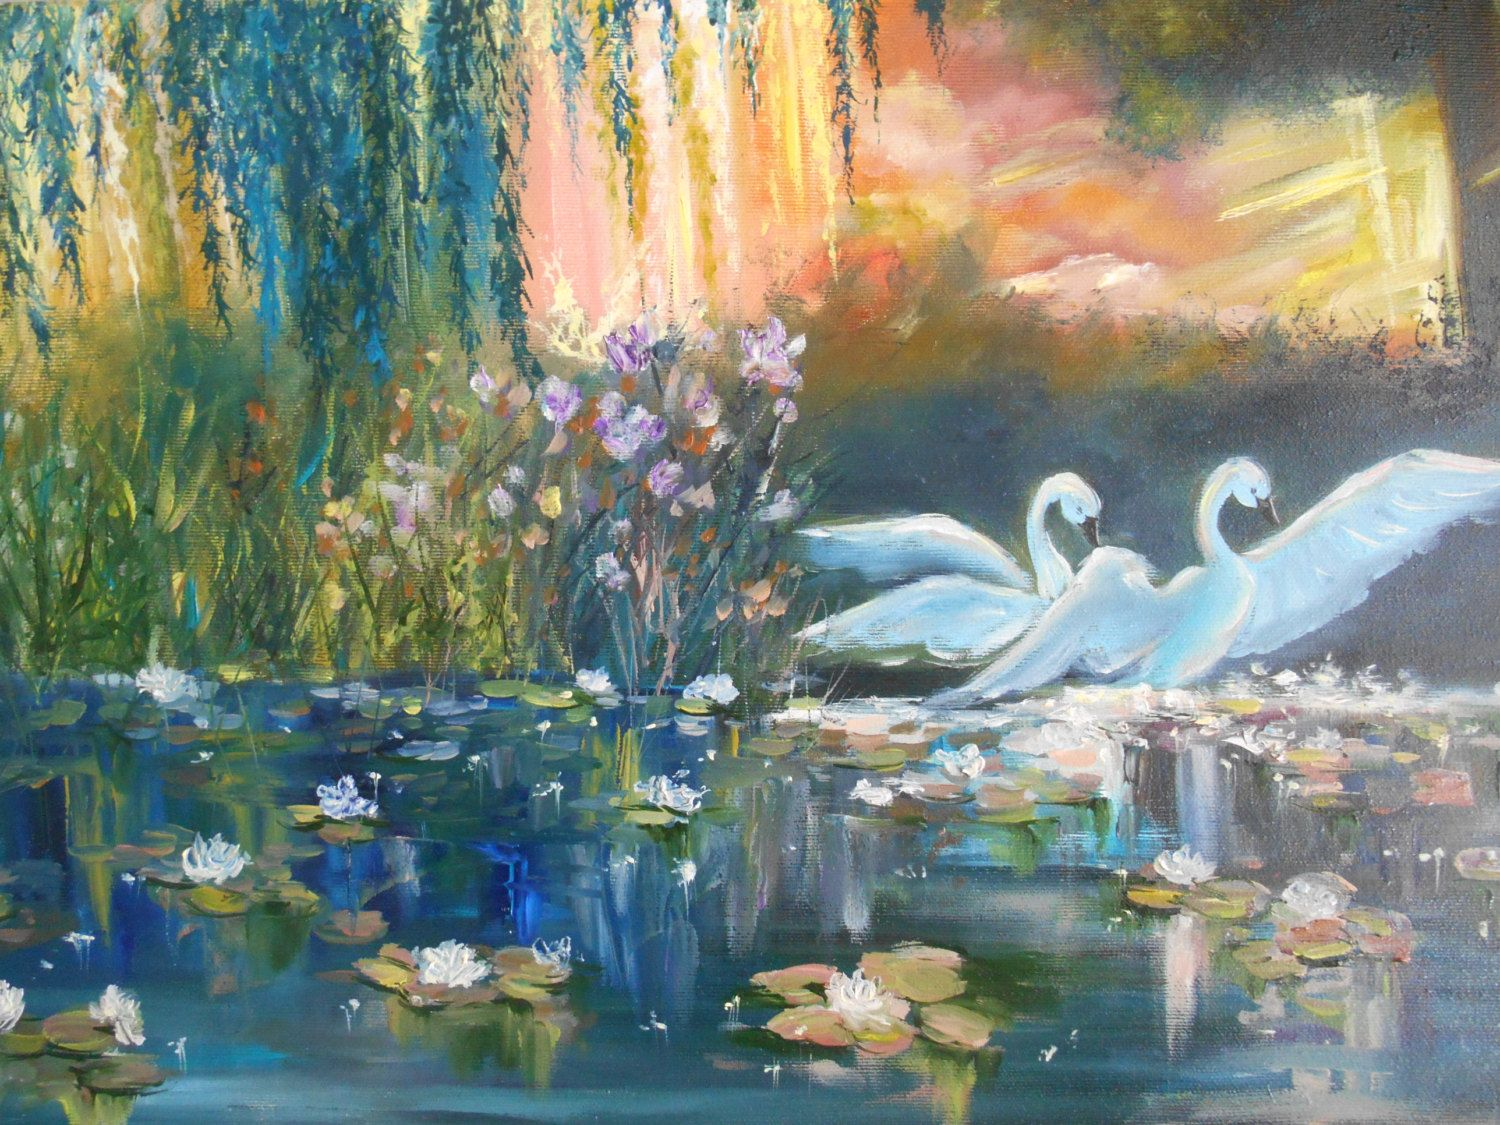 Oil Painting Large Canvas Swan Wall Art Romantic Landscape Fairy Lake With Lilies